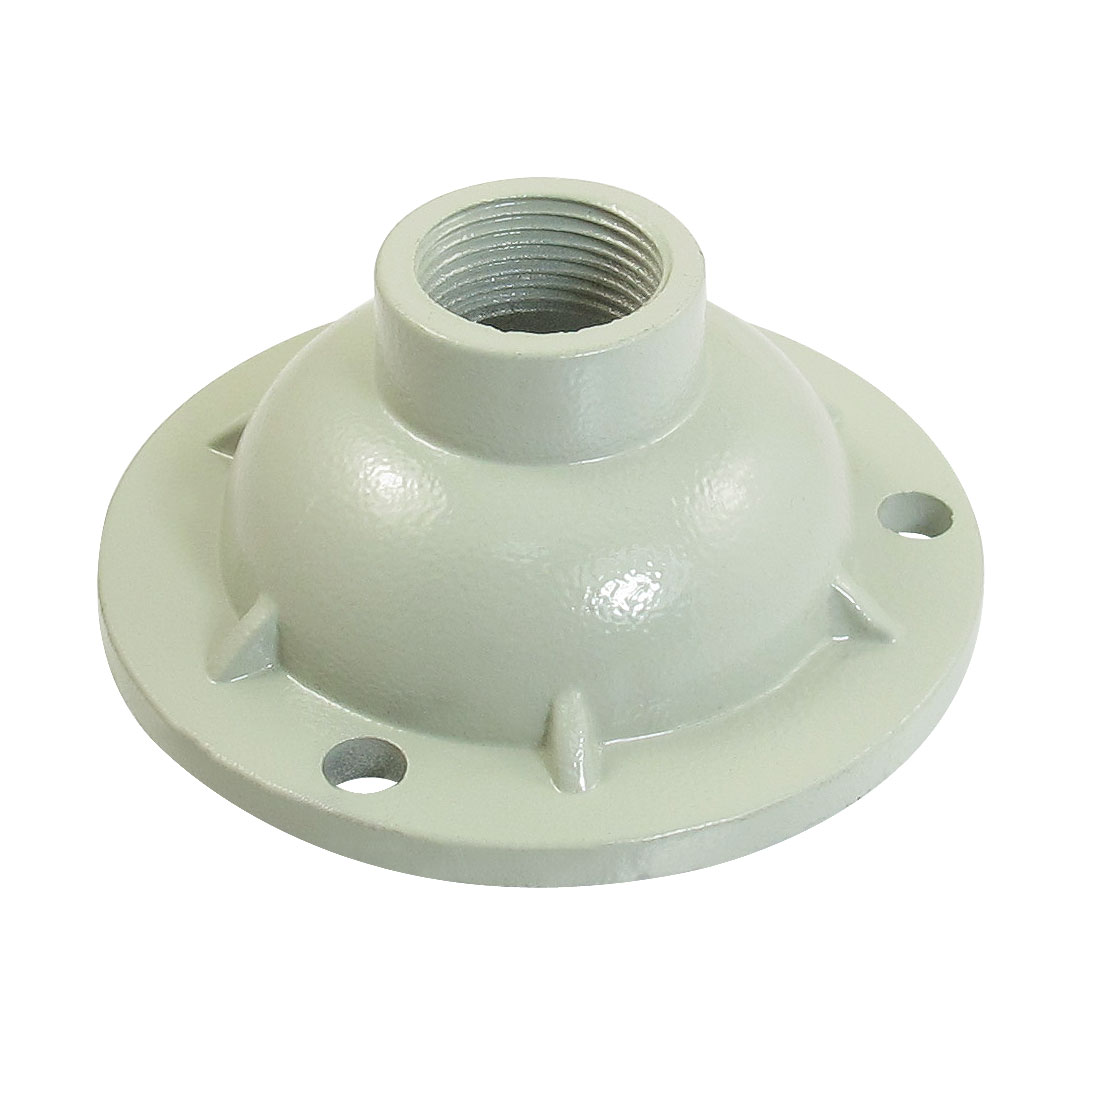 25mm Thread Dia One Hole Connecting Metal Round Water-Proof Junction Box